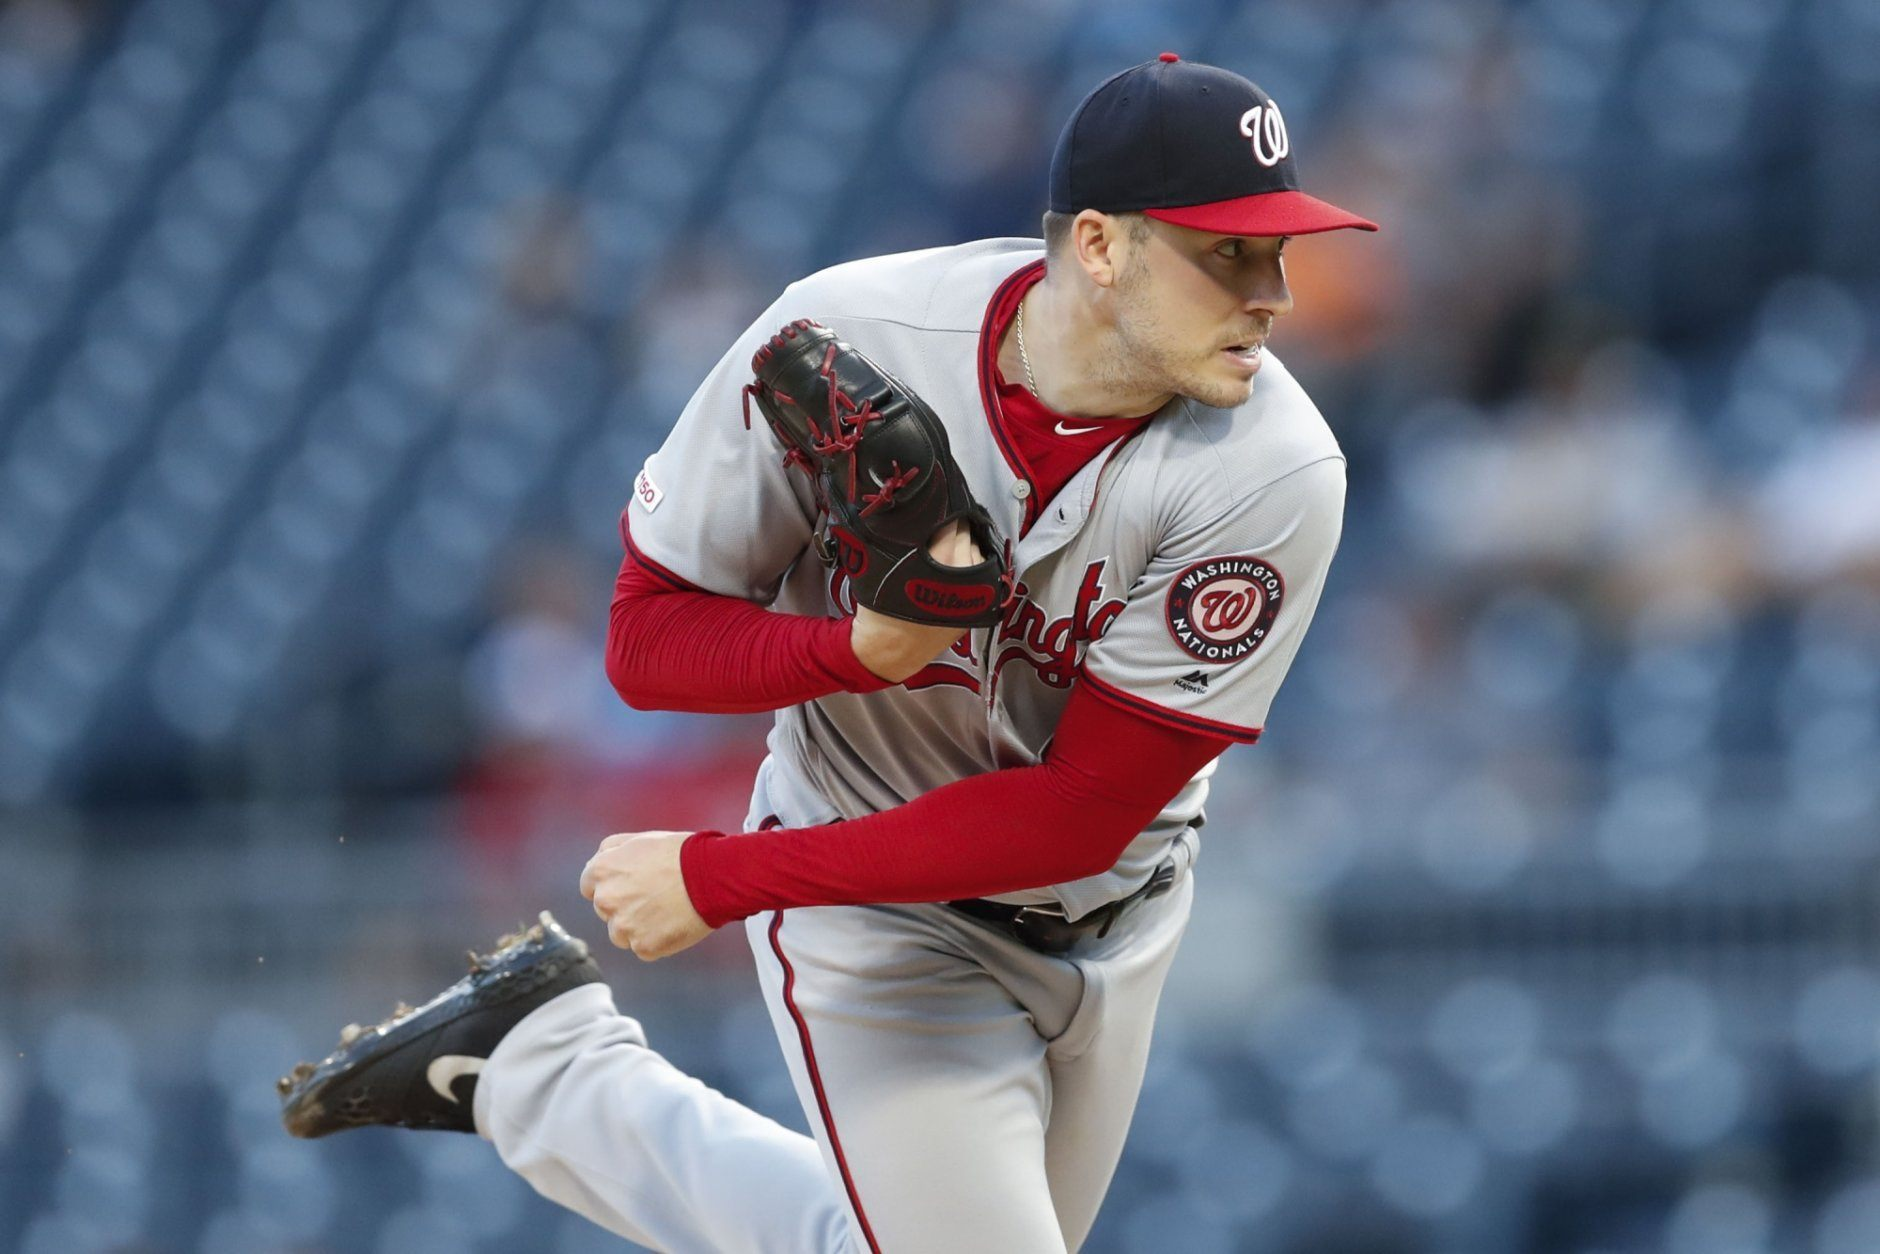 Washington Nationals starter Patrick Corbin pitches to a Pittsburgh Pirates batter during the first inning of a baseball game Wednesday, Aug. 21, 2019, in Pittsburgh. (AP Photo/Keith Srakocic)